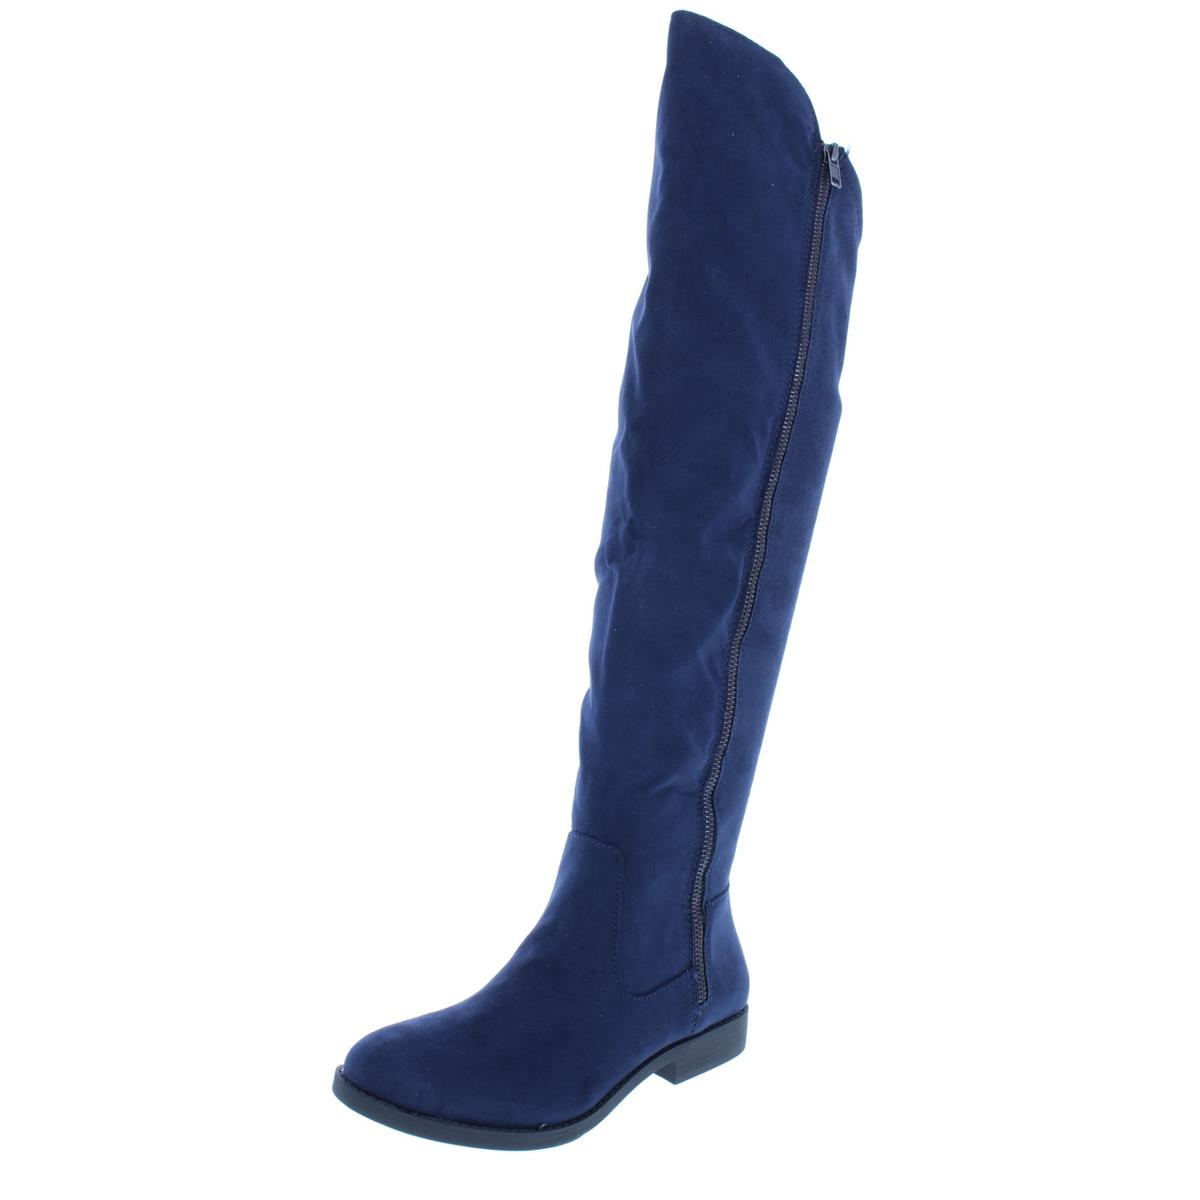 Style Over-The-Knee & Co. Damenschuhe Hadleyy Faux Suede Over-The-Knee Style Stiefel Schuhes BHFO 3275 c8df48